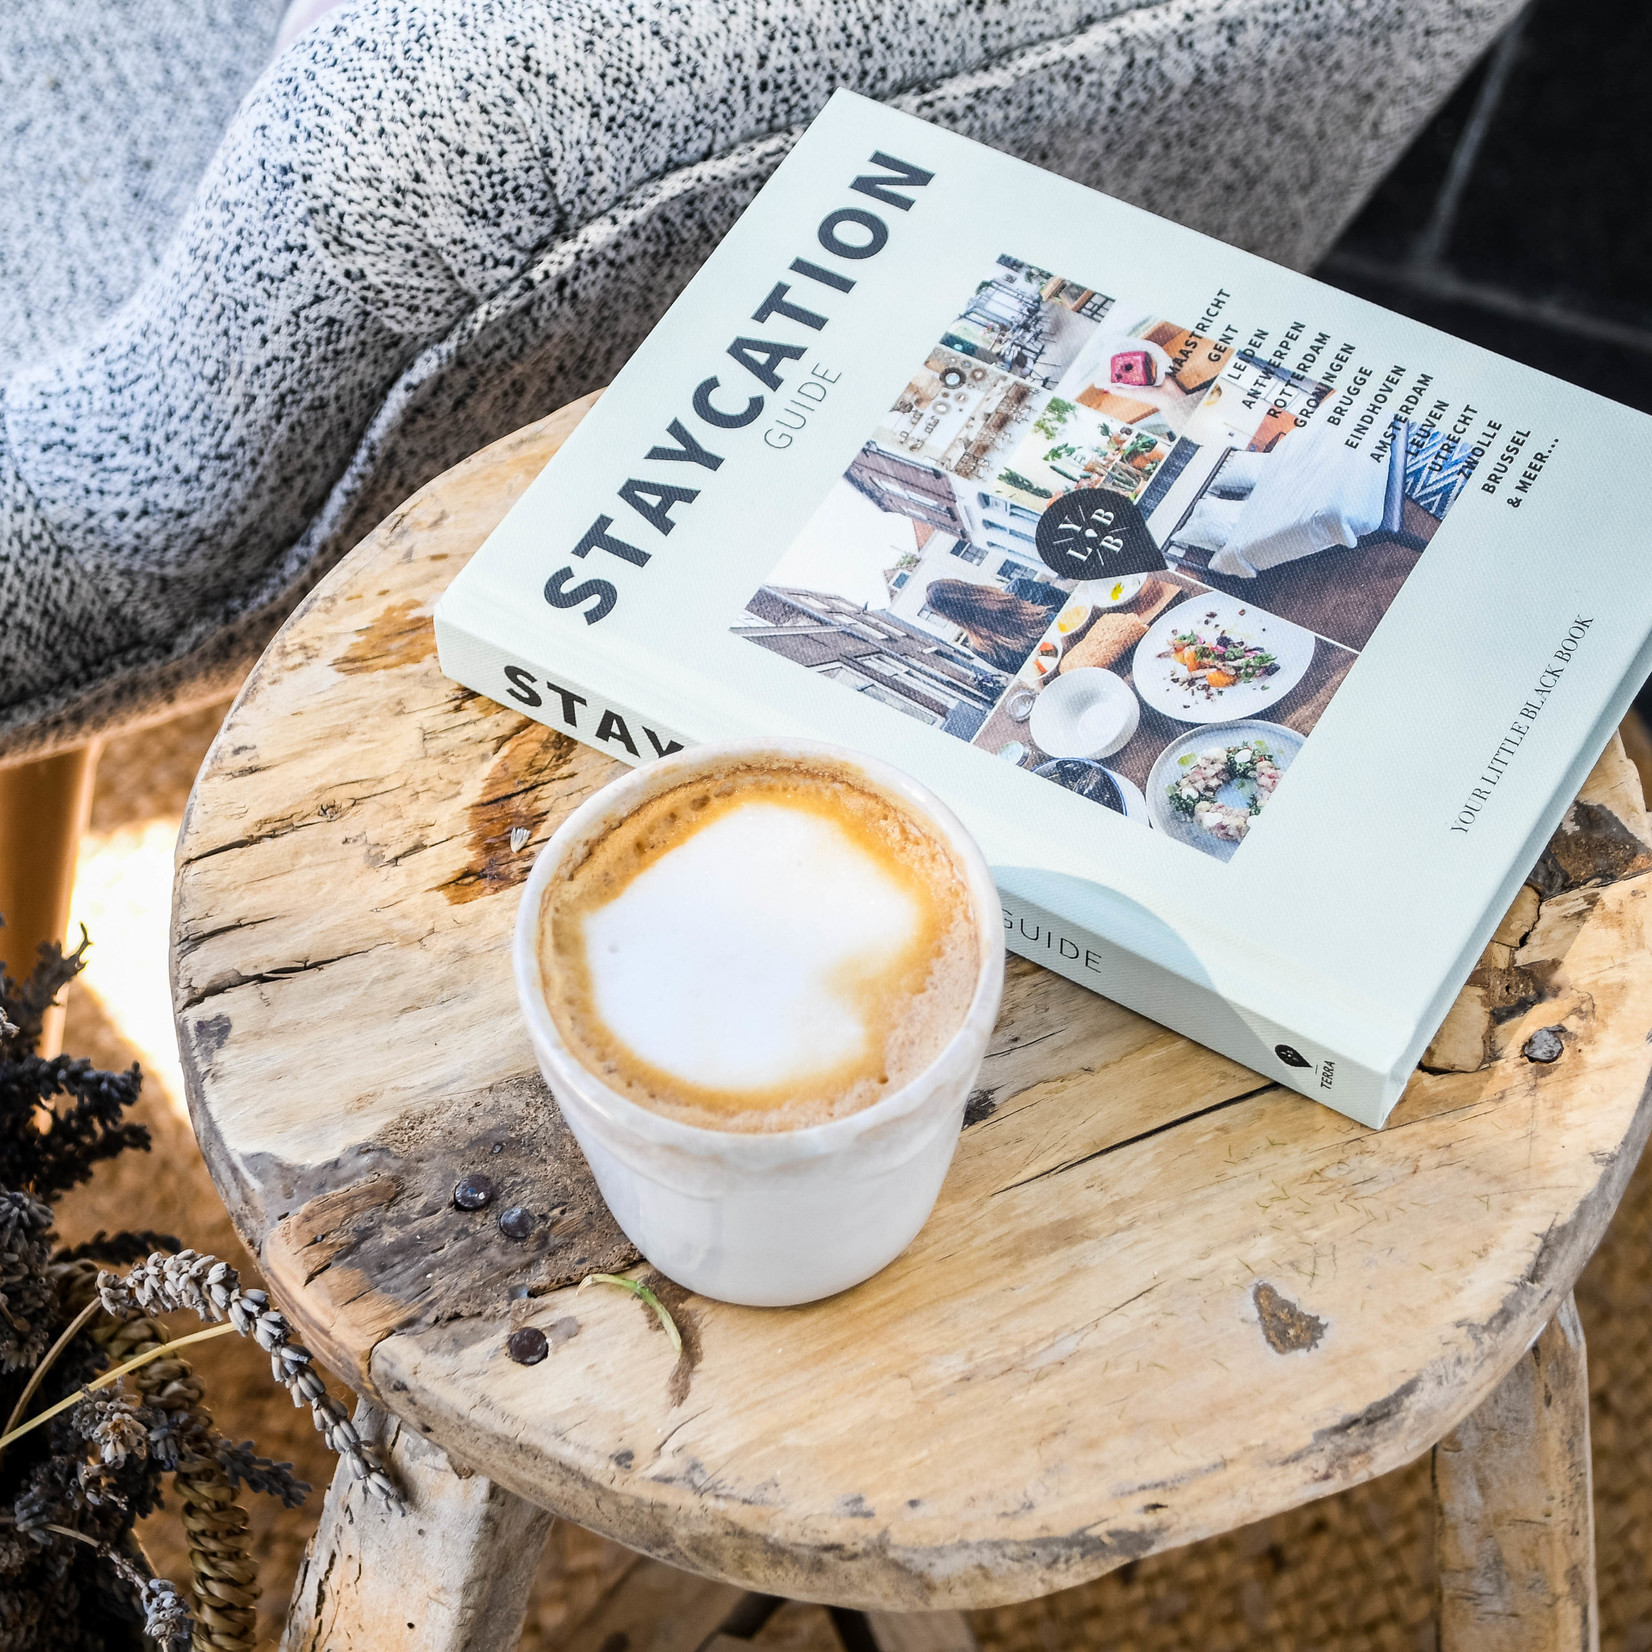 Your Little Black Book Your Little Black Book| Boek - Staycation Guide